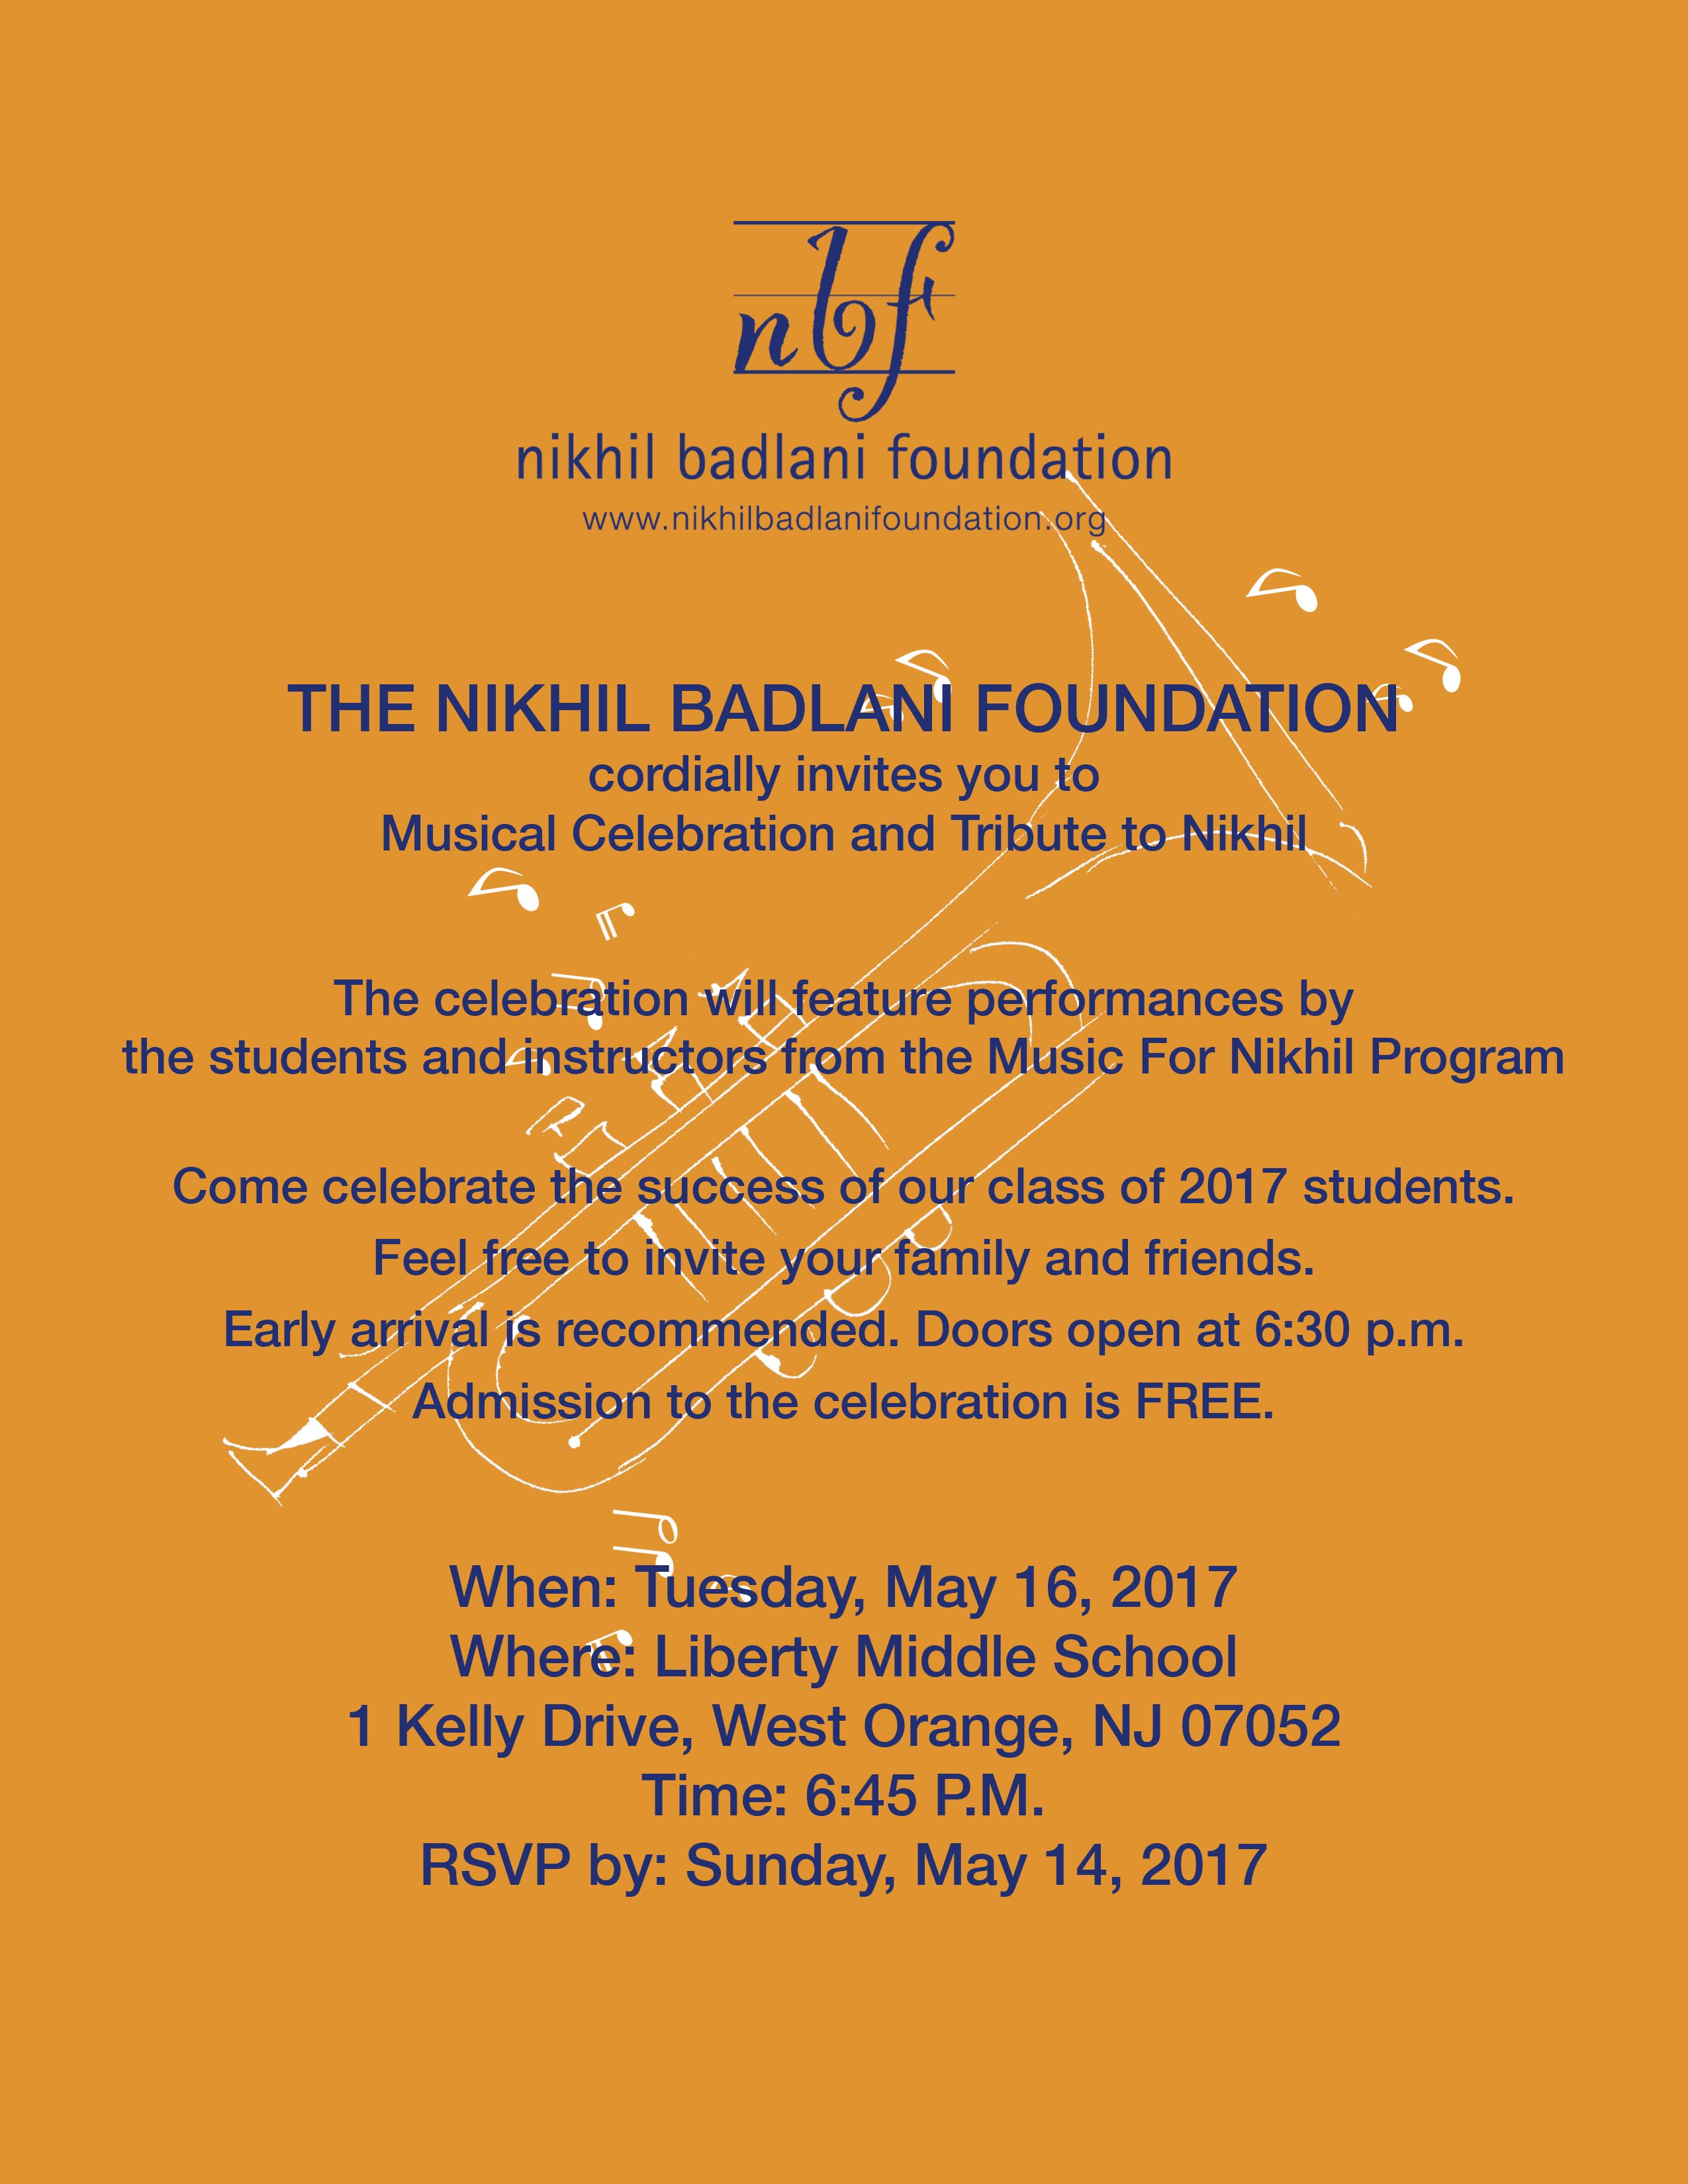 Music for Nikhil 2017 is on May 16 at 6:30 PM at Liberty Middle School, West Orange, NJ 07052